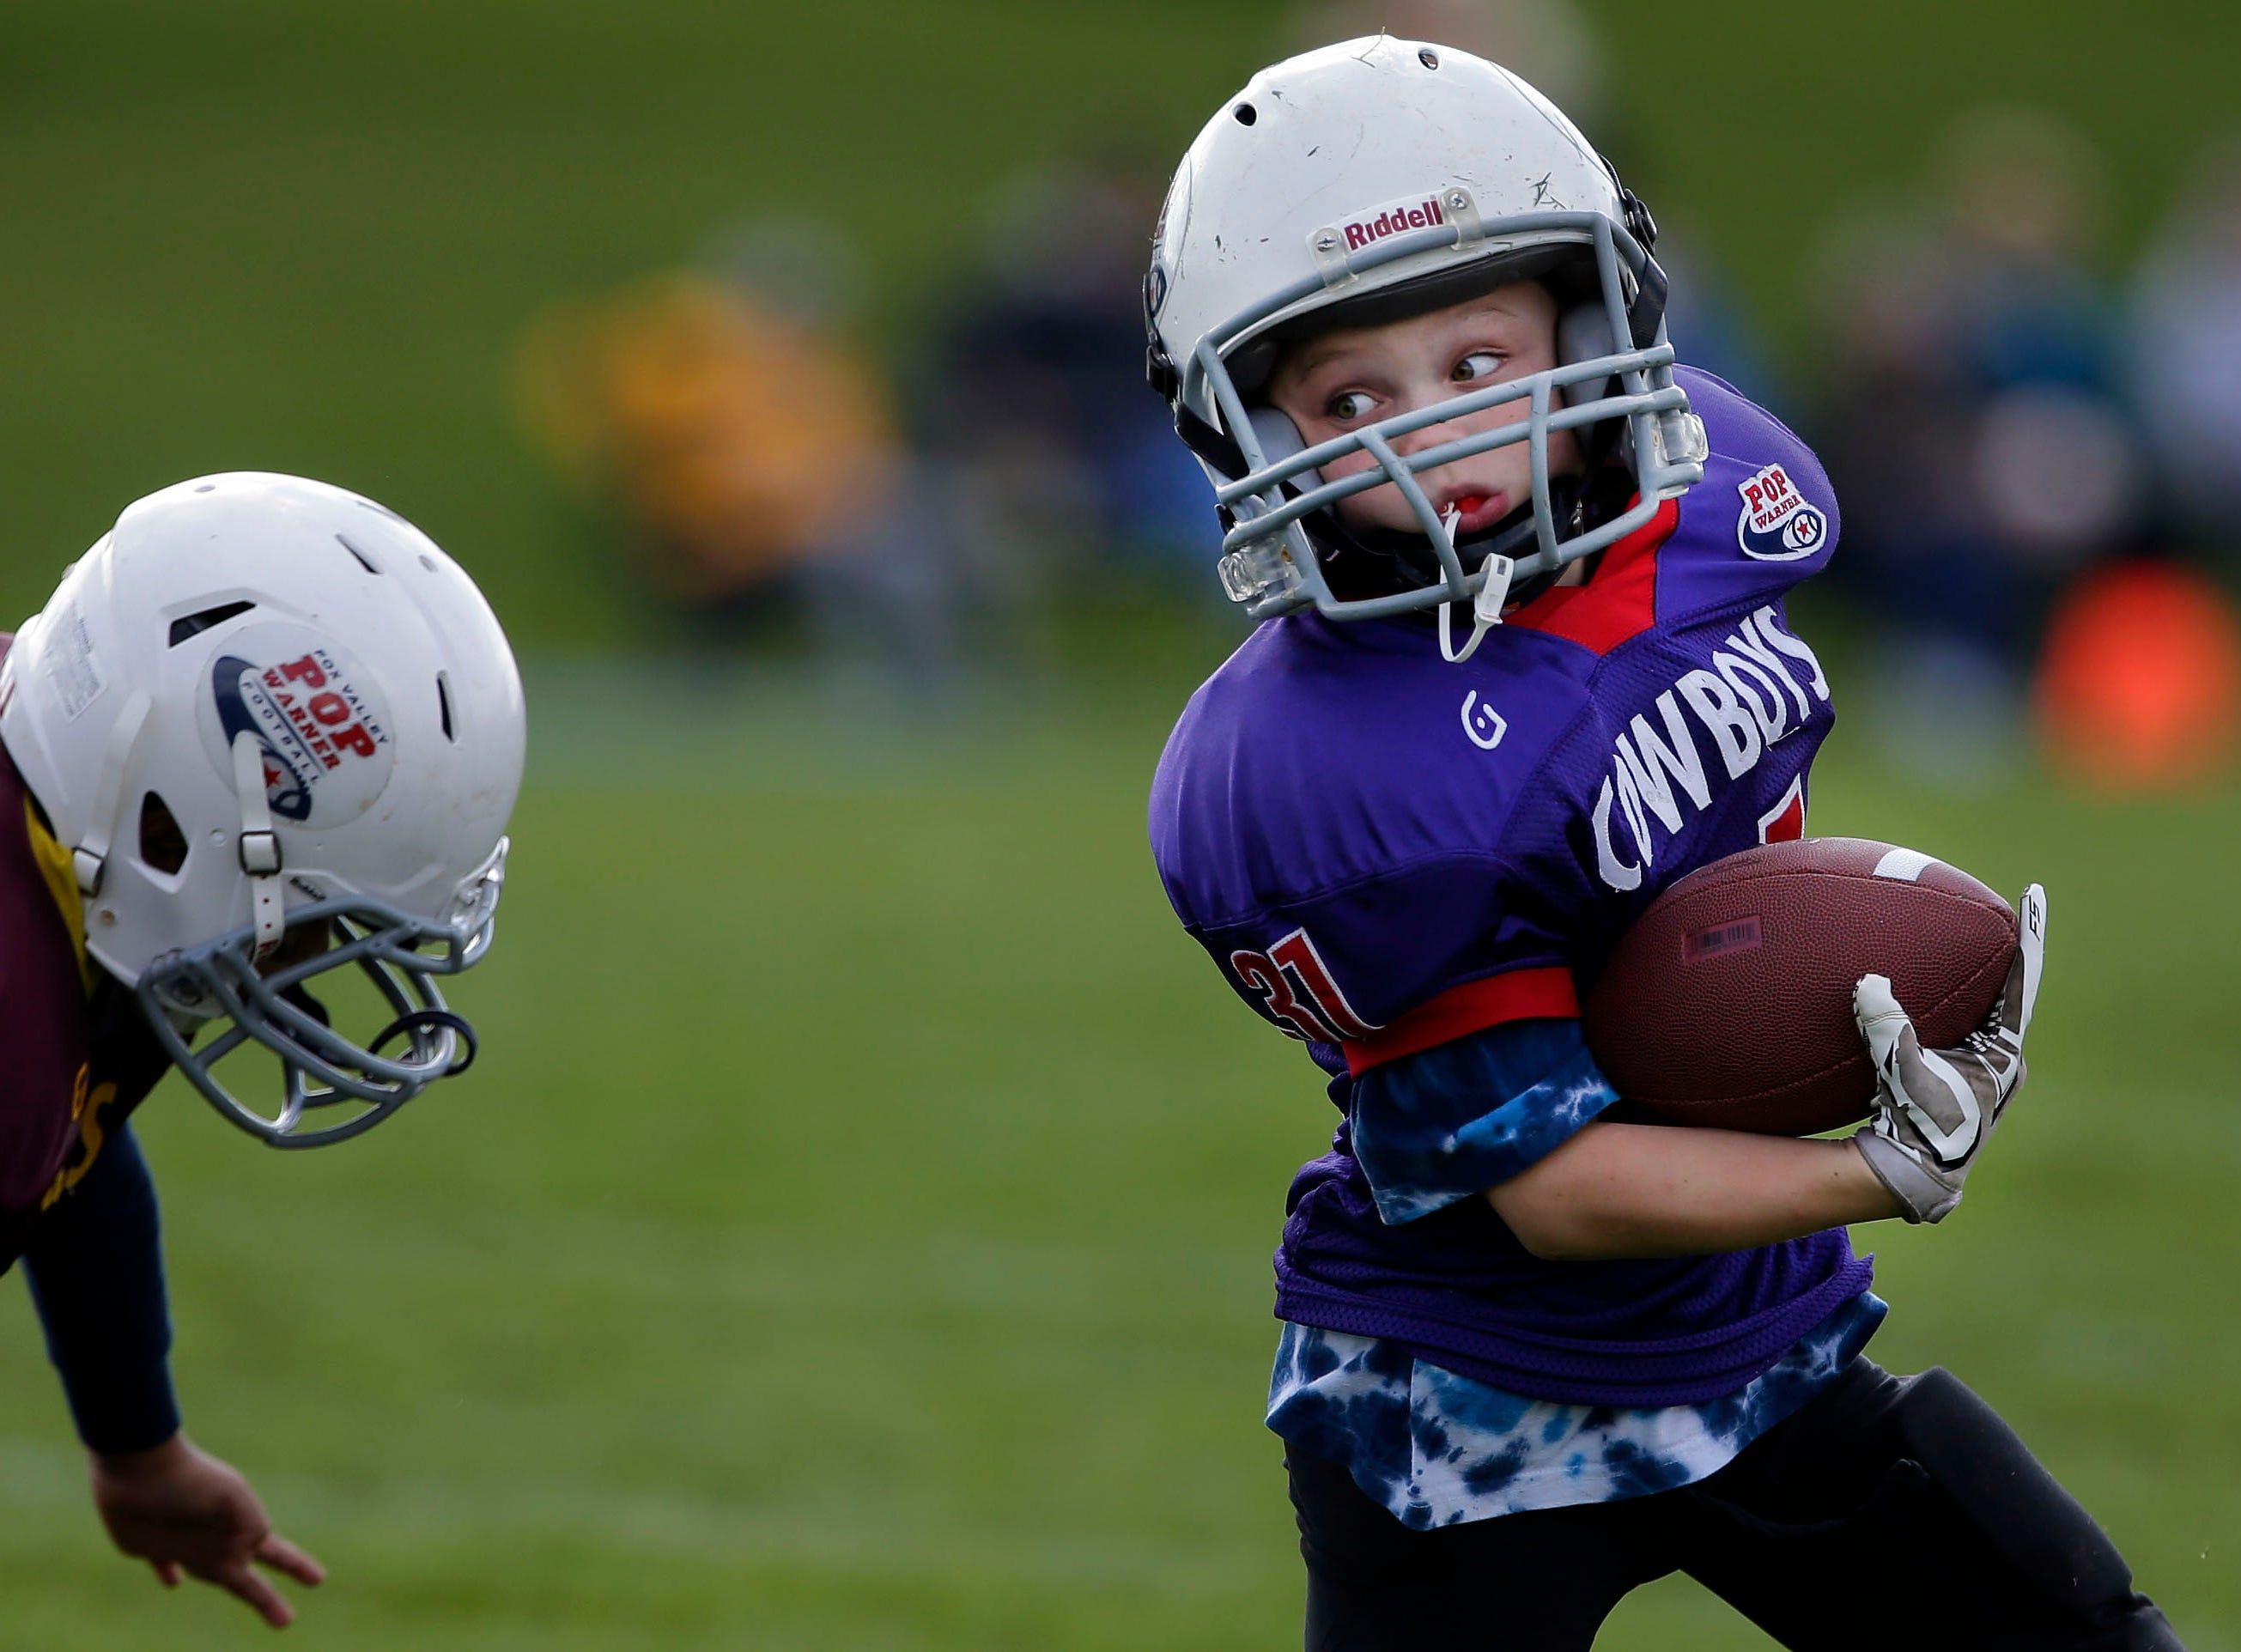 Anthony Reischl of the Cowboys gets away from Richard Ayon of the Foxes as Fox Valley Pop Warner Football opens the season Saturday, September 8, 2018, at Plamann Park in Grand Chute, Wis.Ron Page/USA TODAY NETWORK-Wisconsin